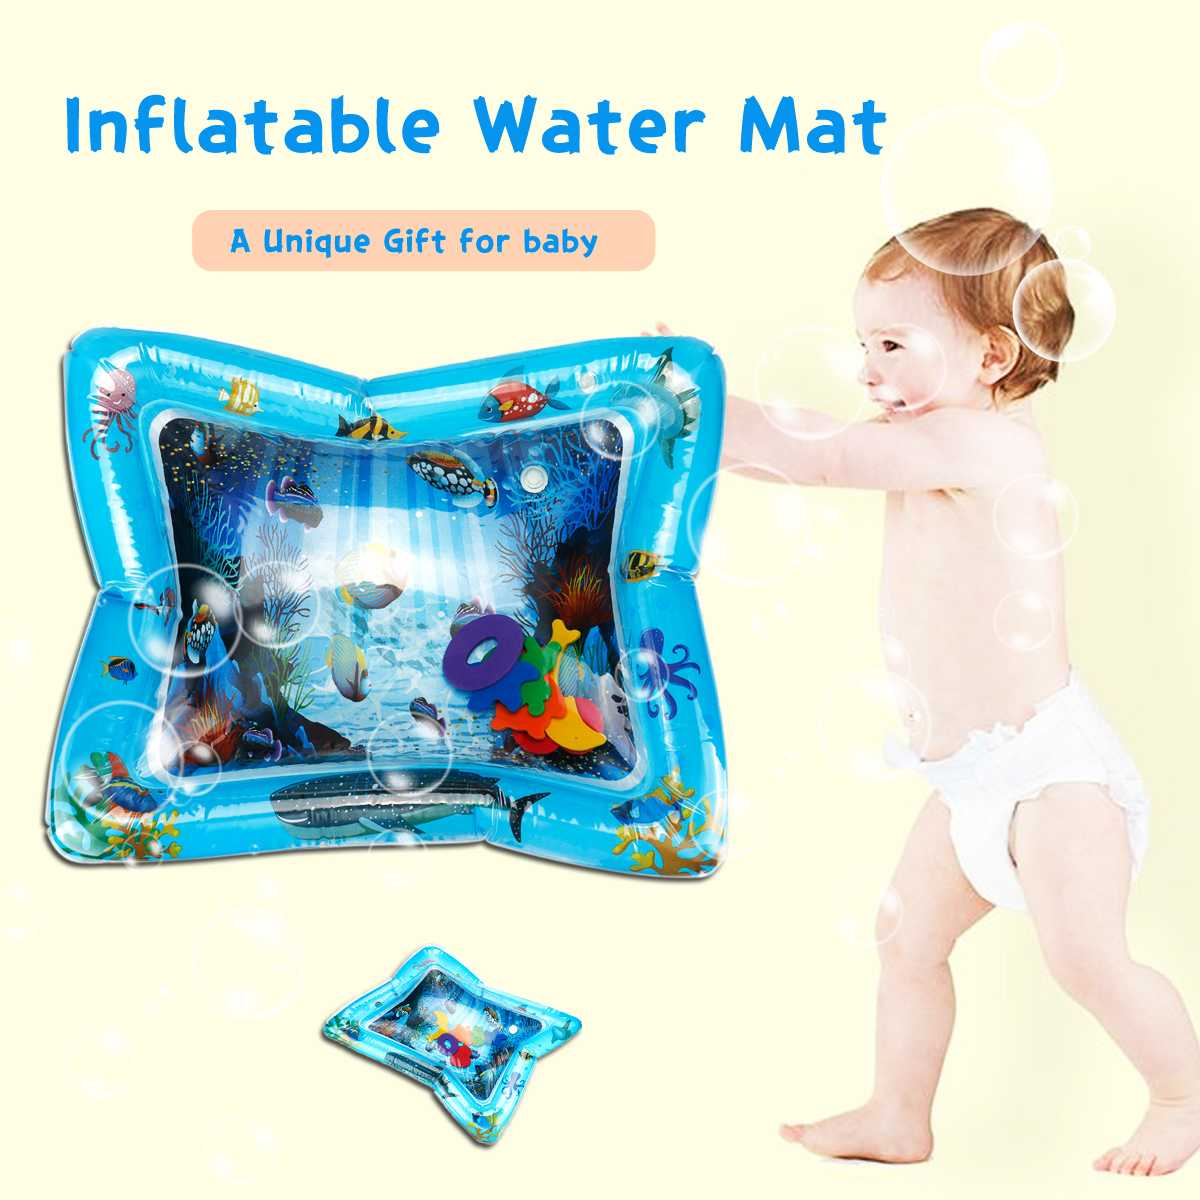 2020 Baby Kids Water Play Mat Toys Inflatable PVC Infant Tummy Time Playmat Toddler Activity Play Center Water Mat For Babies